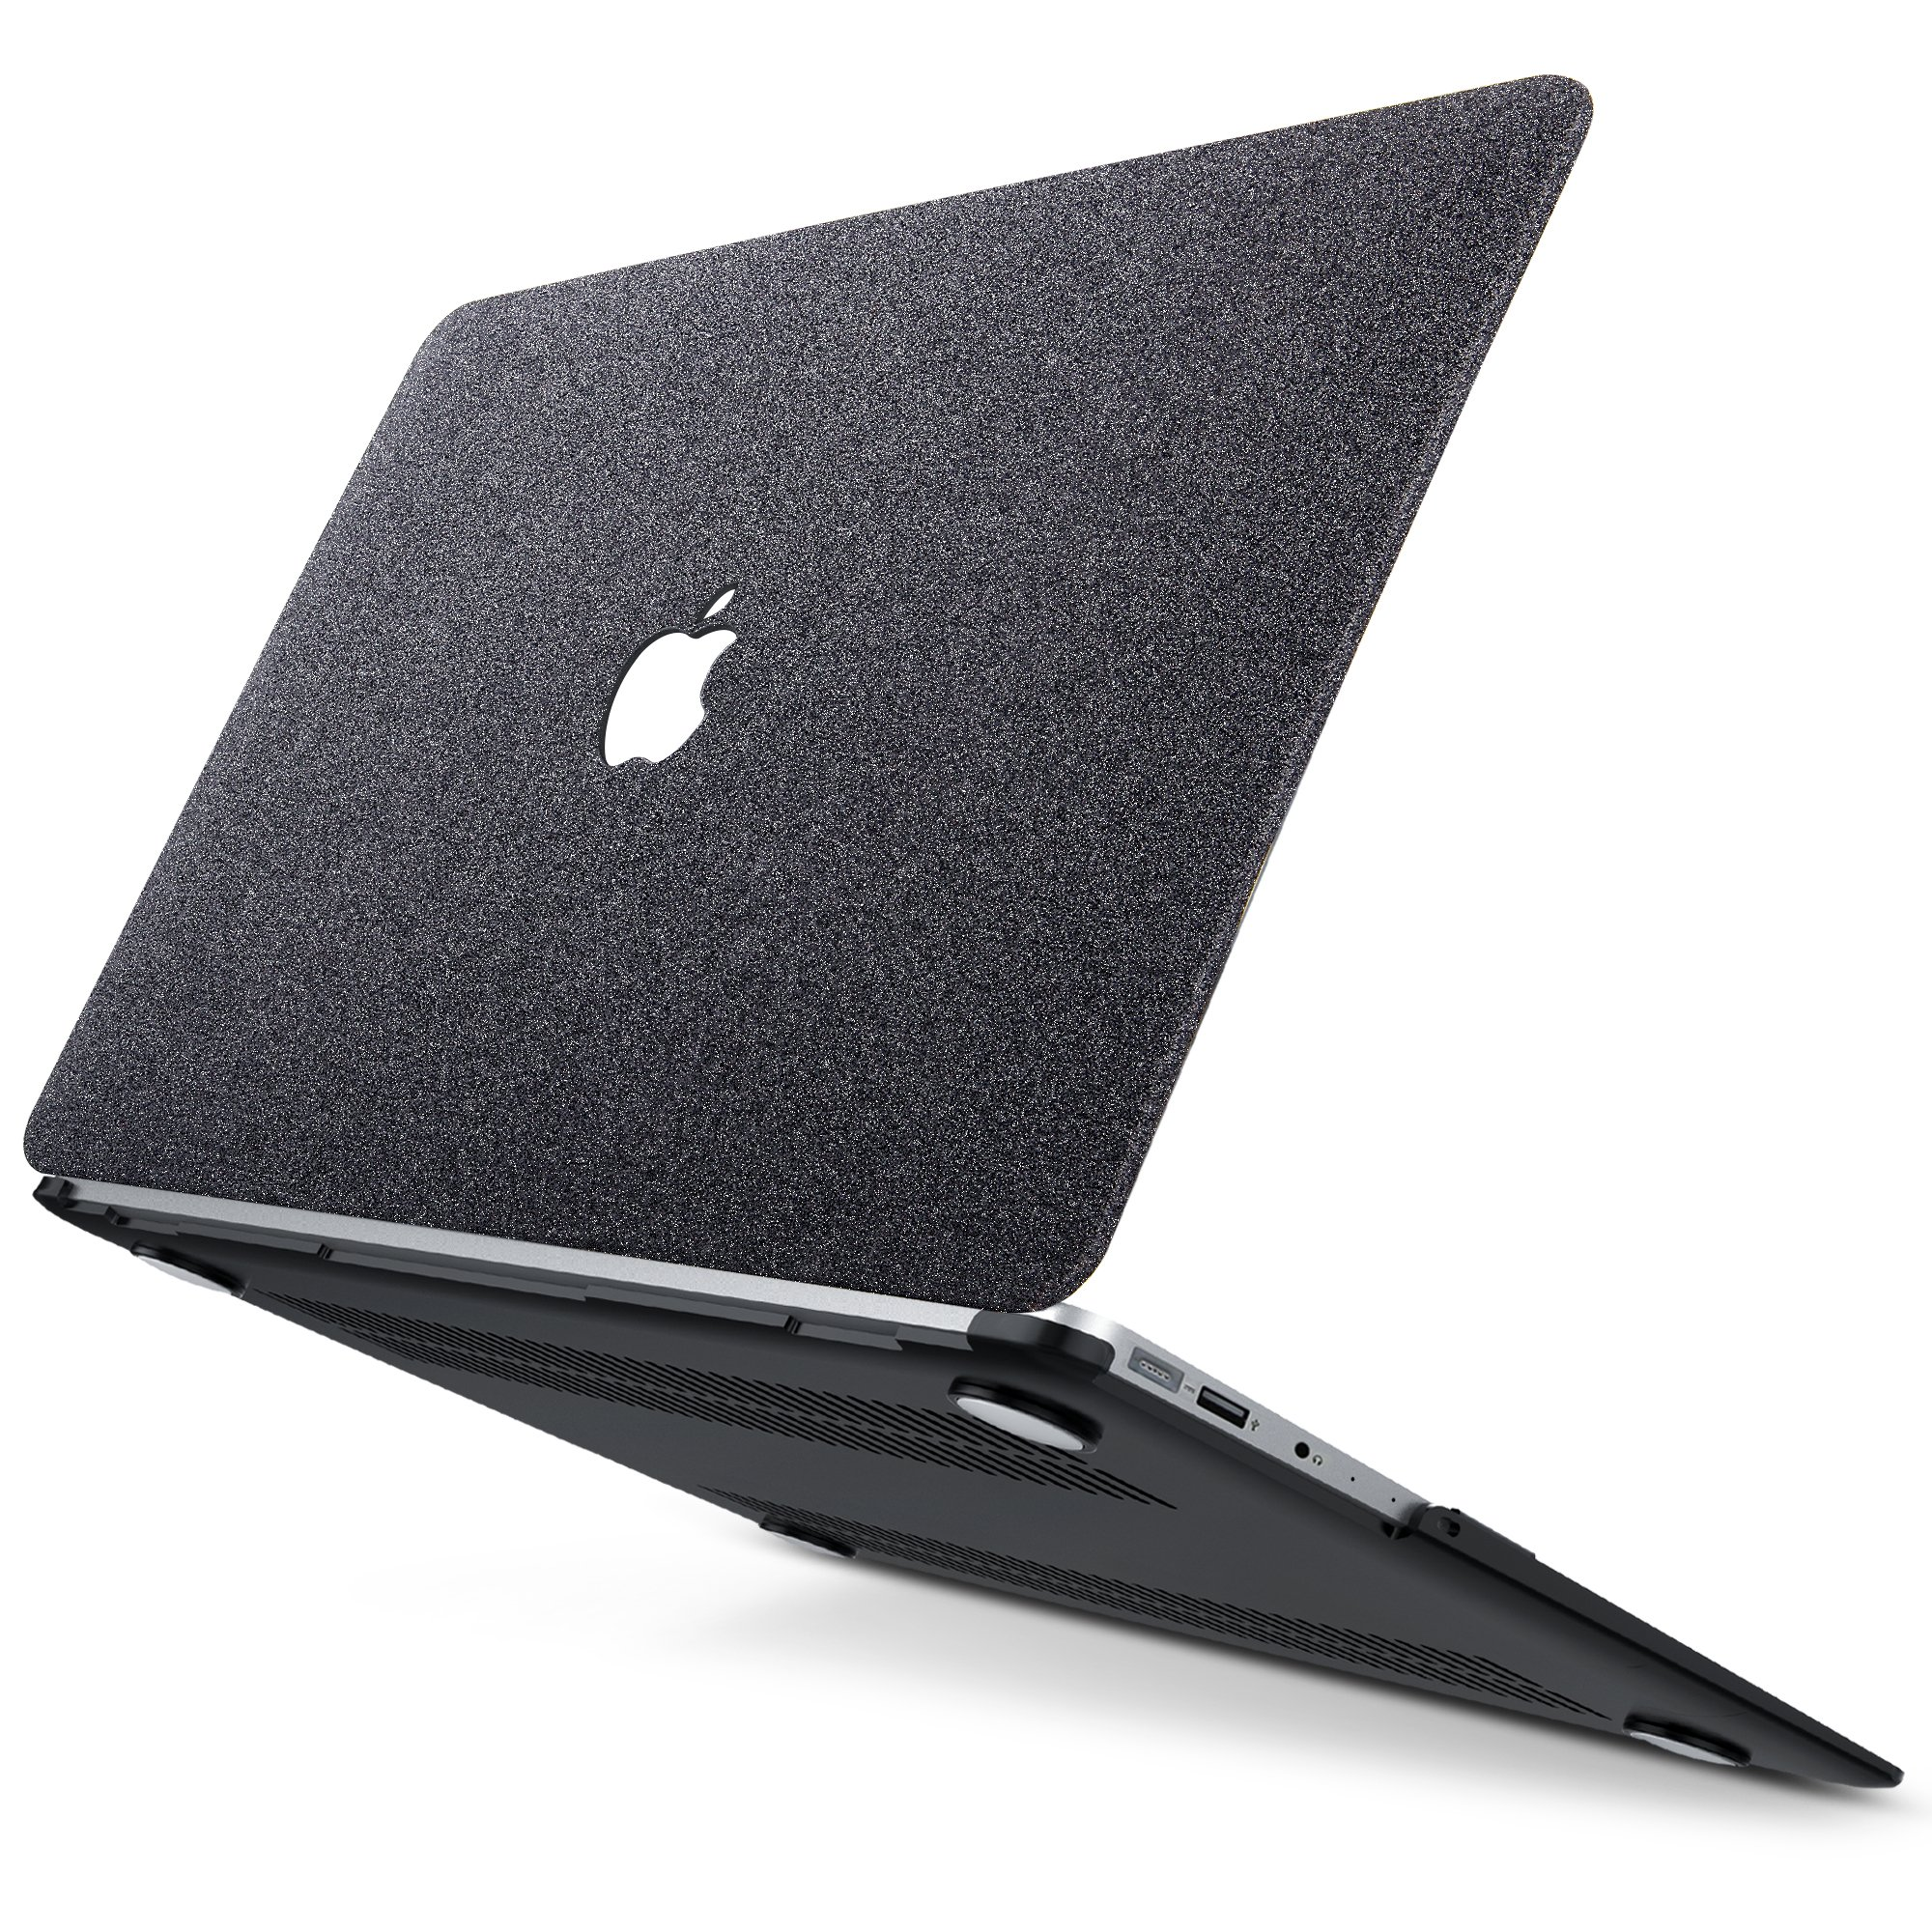 B BELK MacBook Air 13'' Case,2 In 1 Matte Glitter Bling Texture Ultra-Slim Light Weight PC Hard Case With Keyboard Cover For MacBook Air 13.3 Inch(Model:A1369/A1466) - Black